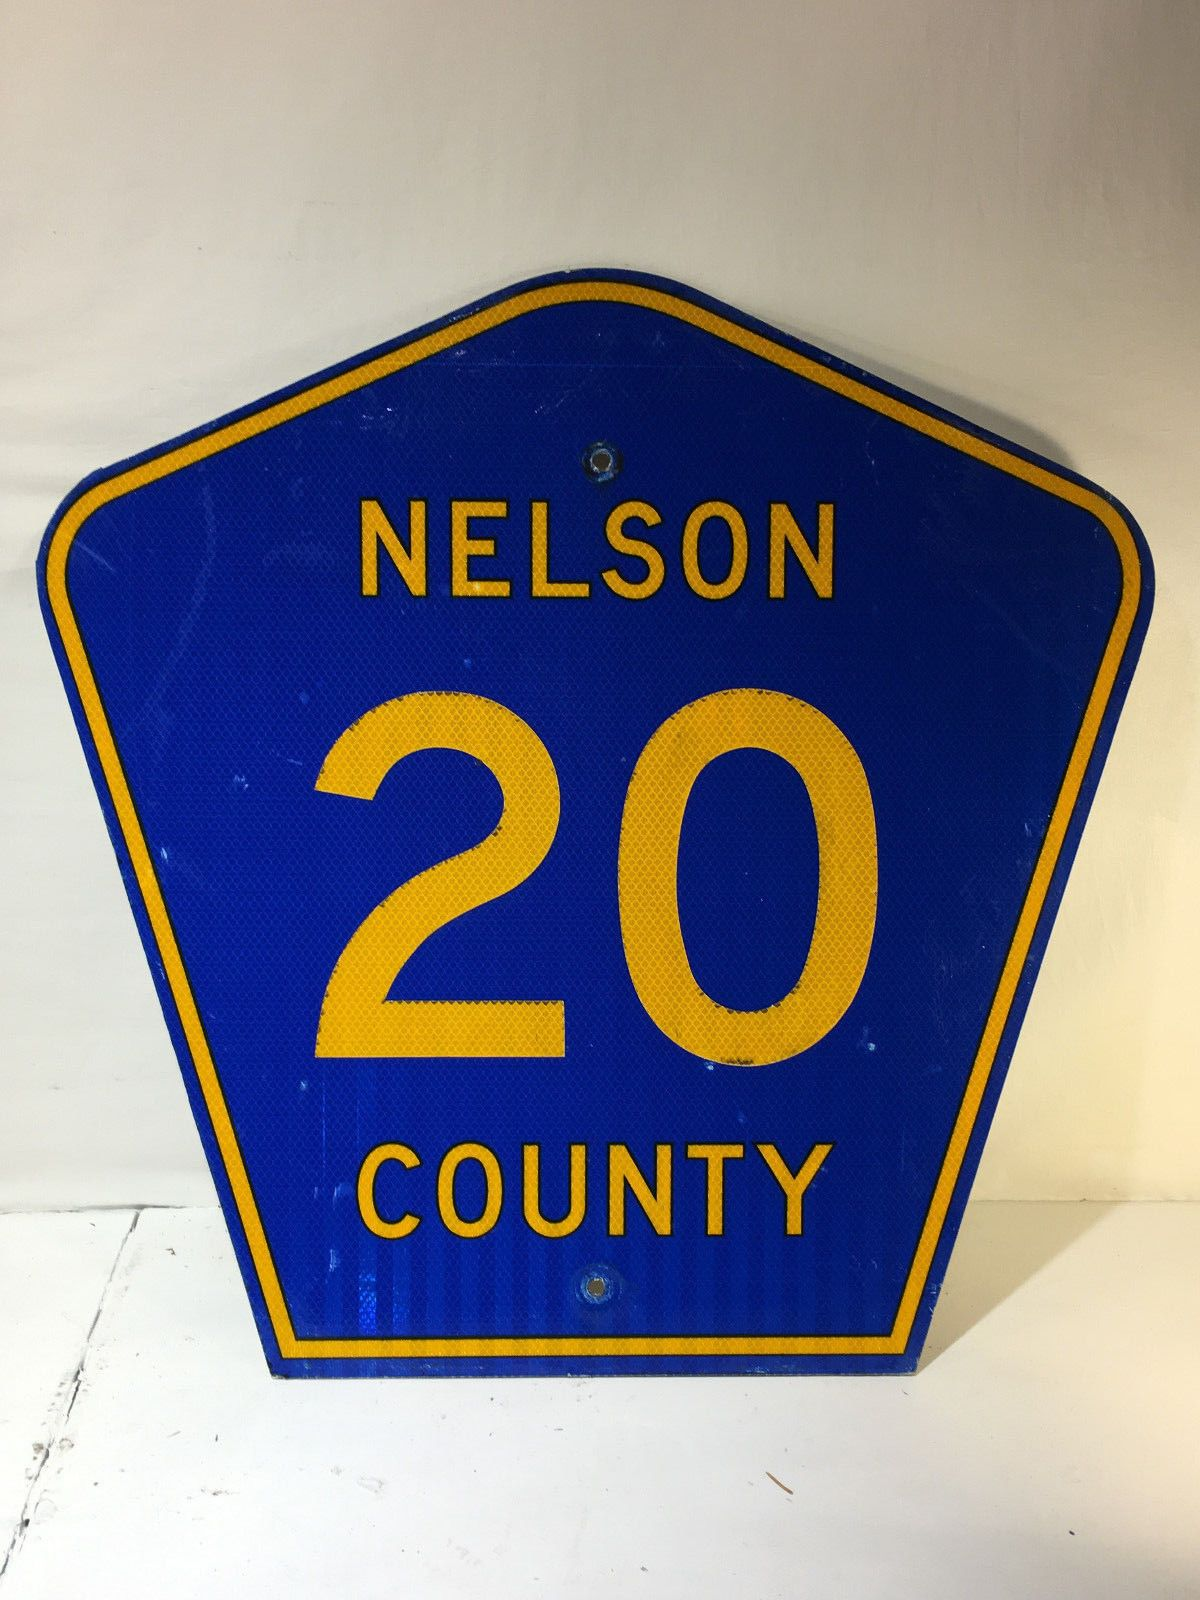 Details About Original Retired North Dakota Nelson County 20 Highway Sign Marker Man Cave Nelson County Highway Signs North Dakota